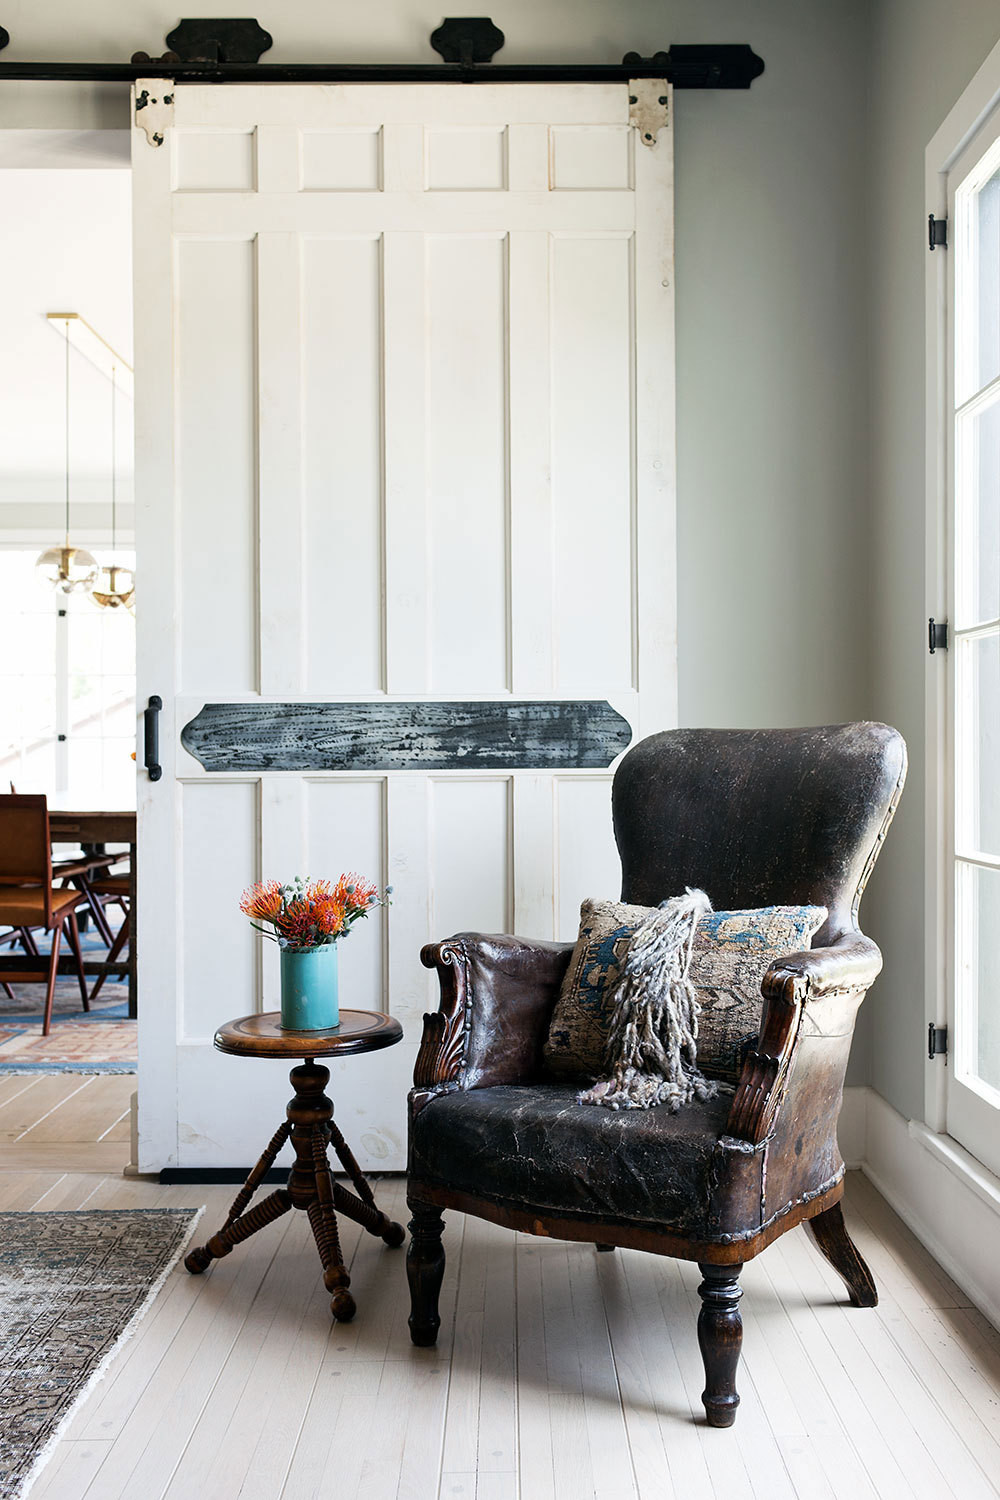 A 19th-century leather chair adds character to the living room.